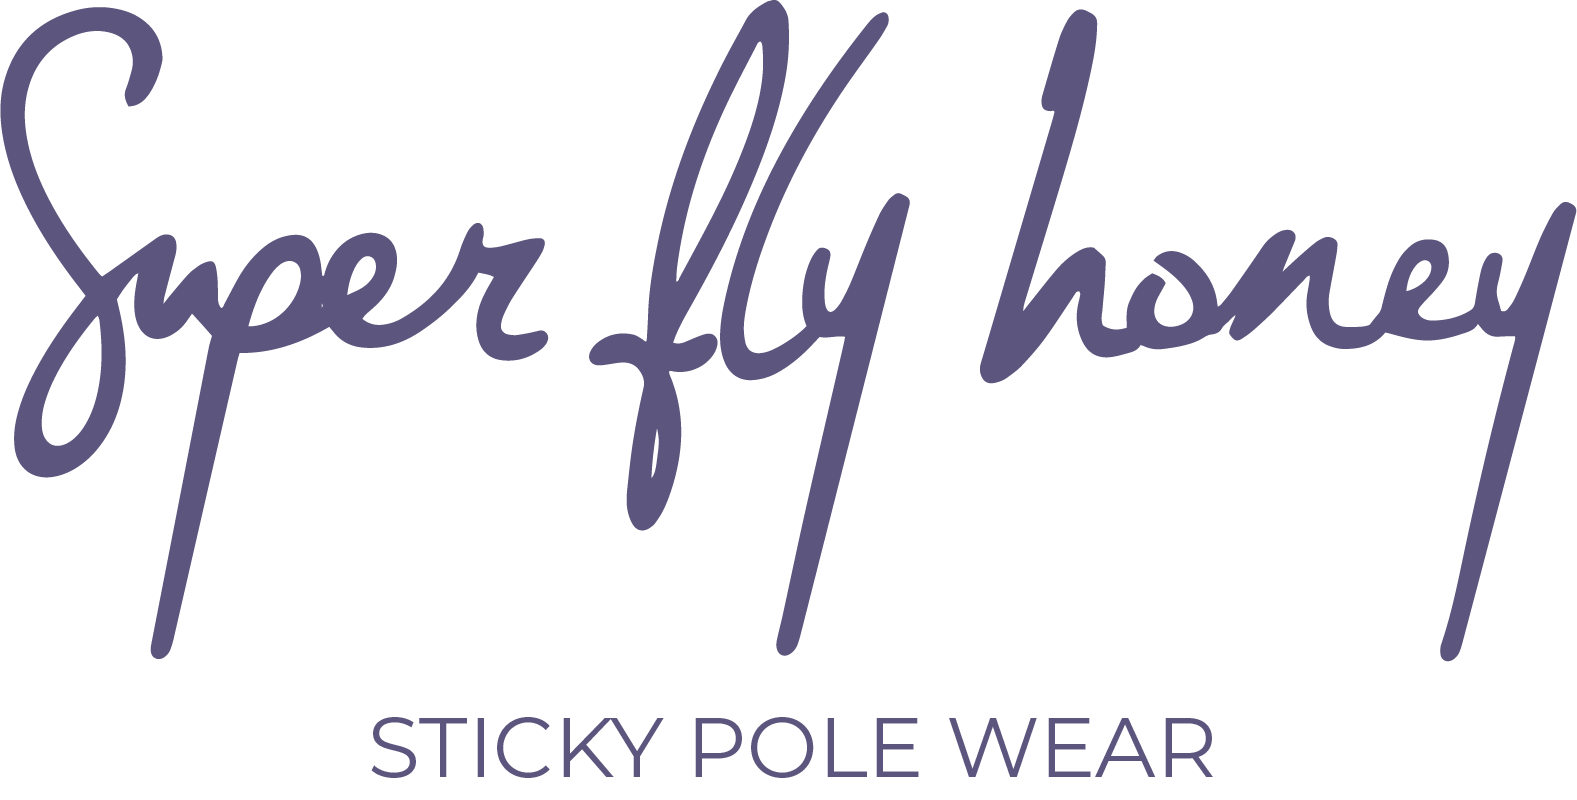 Super Fly Honey Sticky Pole Wear Leggings safety Statement